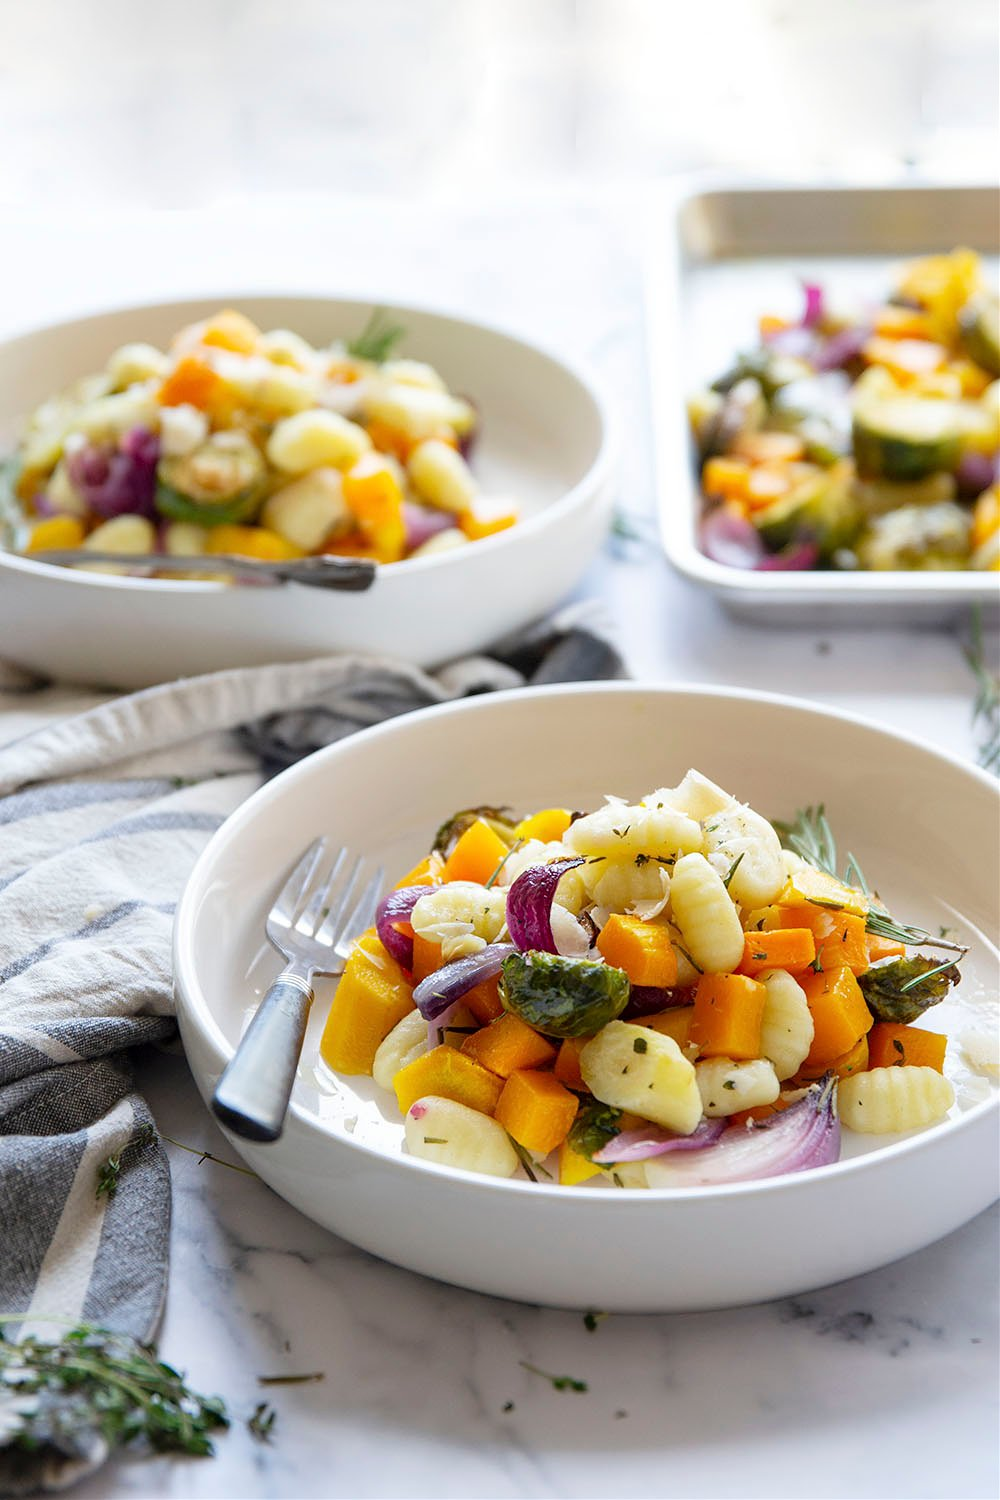 Sheet pan gnocchi is roasted with hearty fall vegetables entirely on one sheet pan in less than hour for an easy weeknight dinner with little to no cleanup!